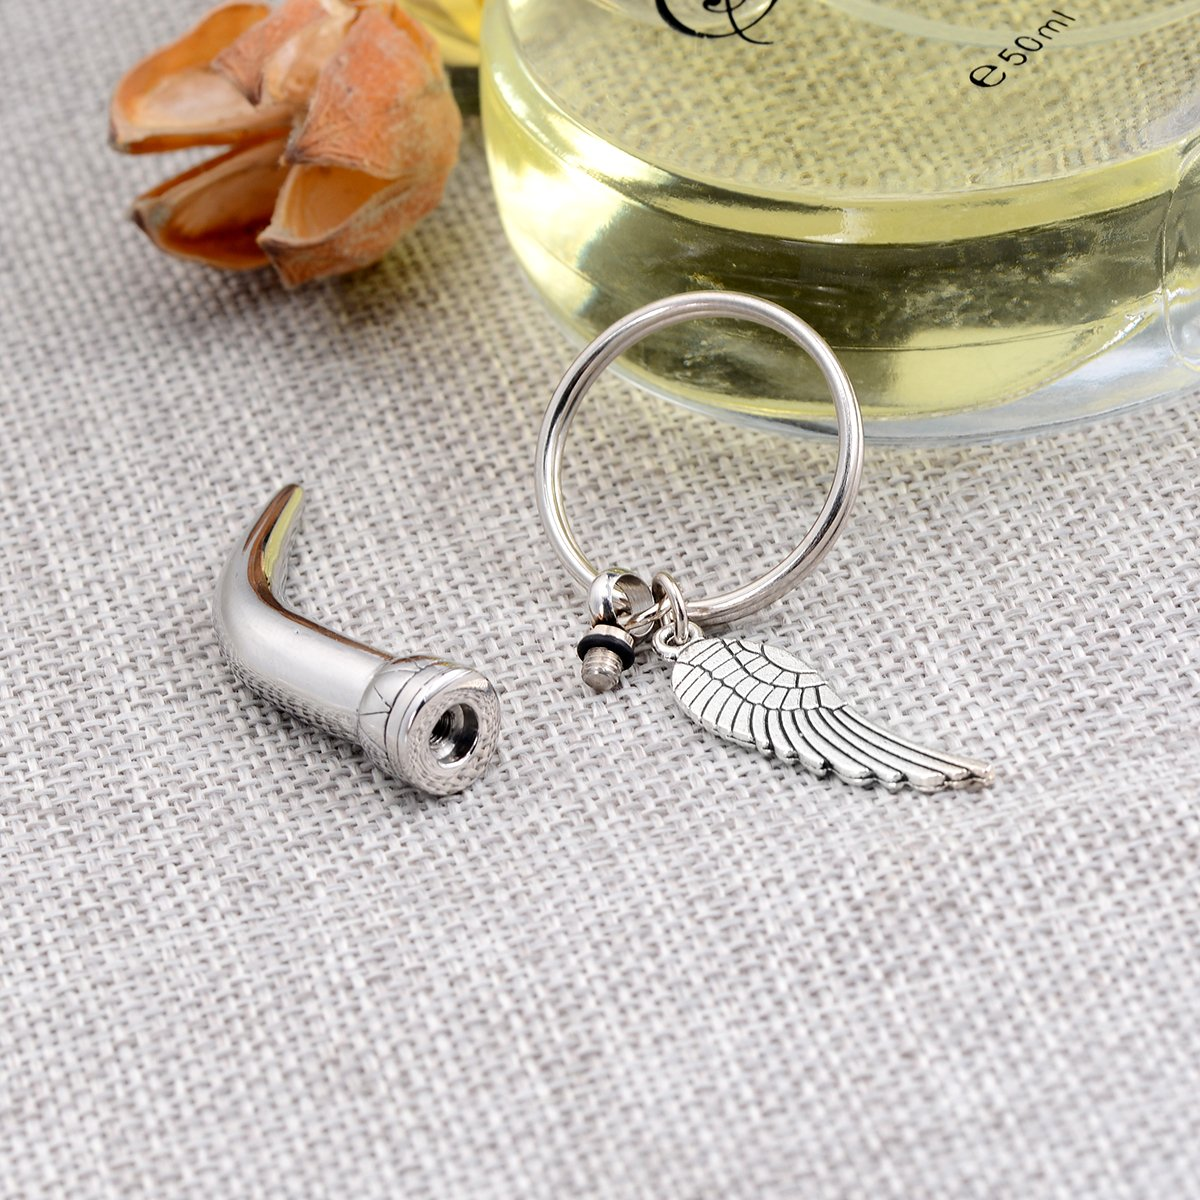 GIONO Cremation Jewelry Angel Wing Charms Urn Pendant Memorial Key-Chain Keepsake Urns Ash Jewelry